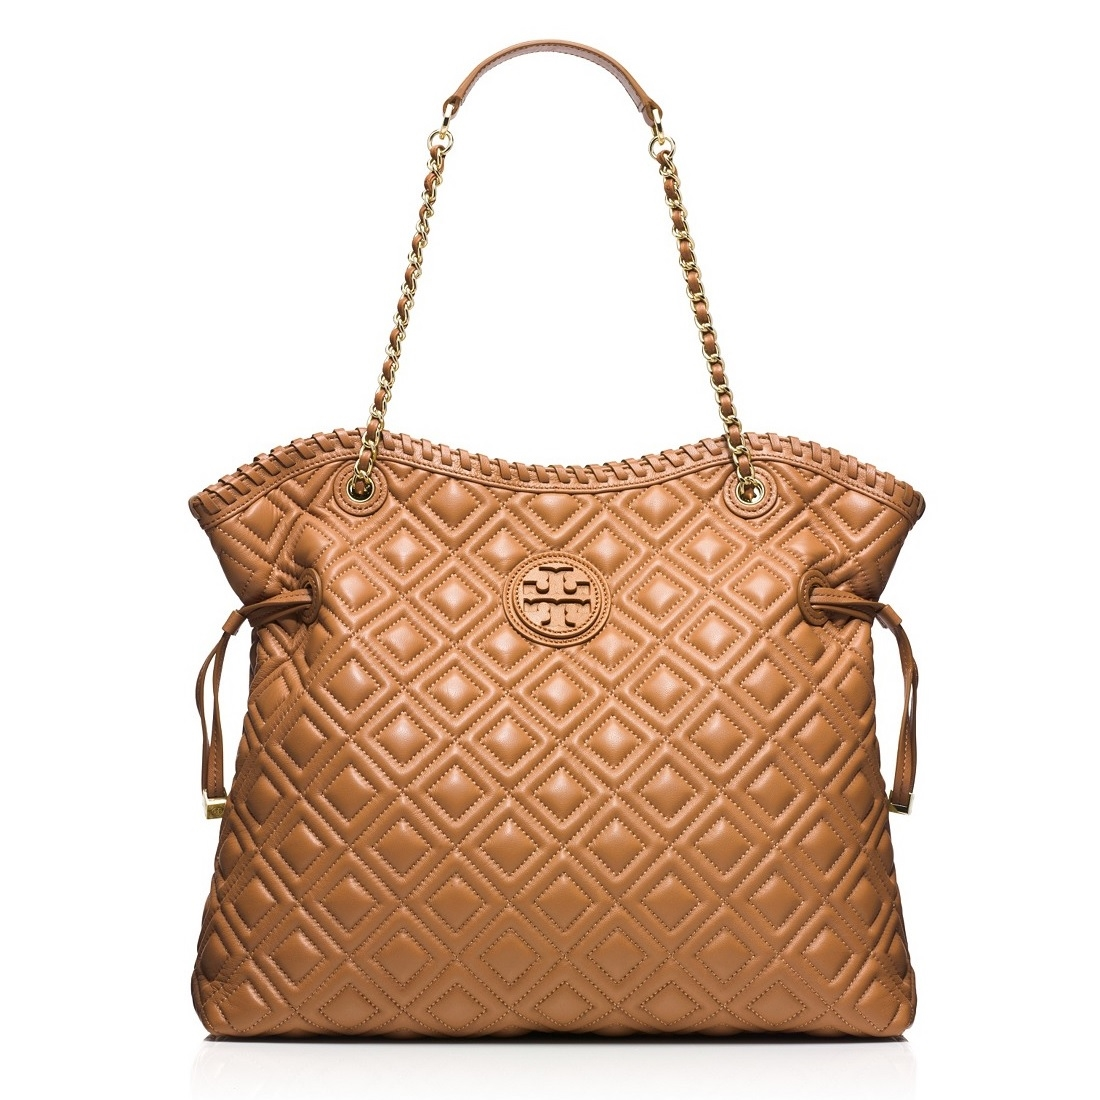 Snap 'n Zip Fashion Accessories | Tory Burch Marion Quilted ... : tory burch quilted tote - Adamdwight.com